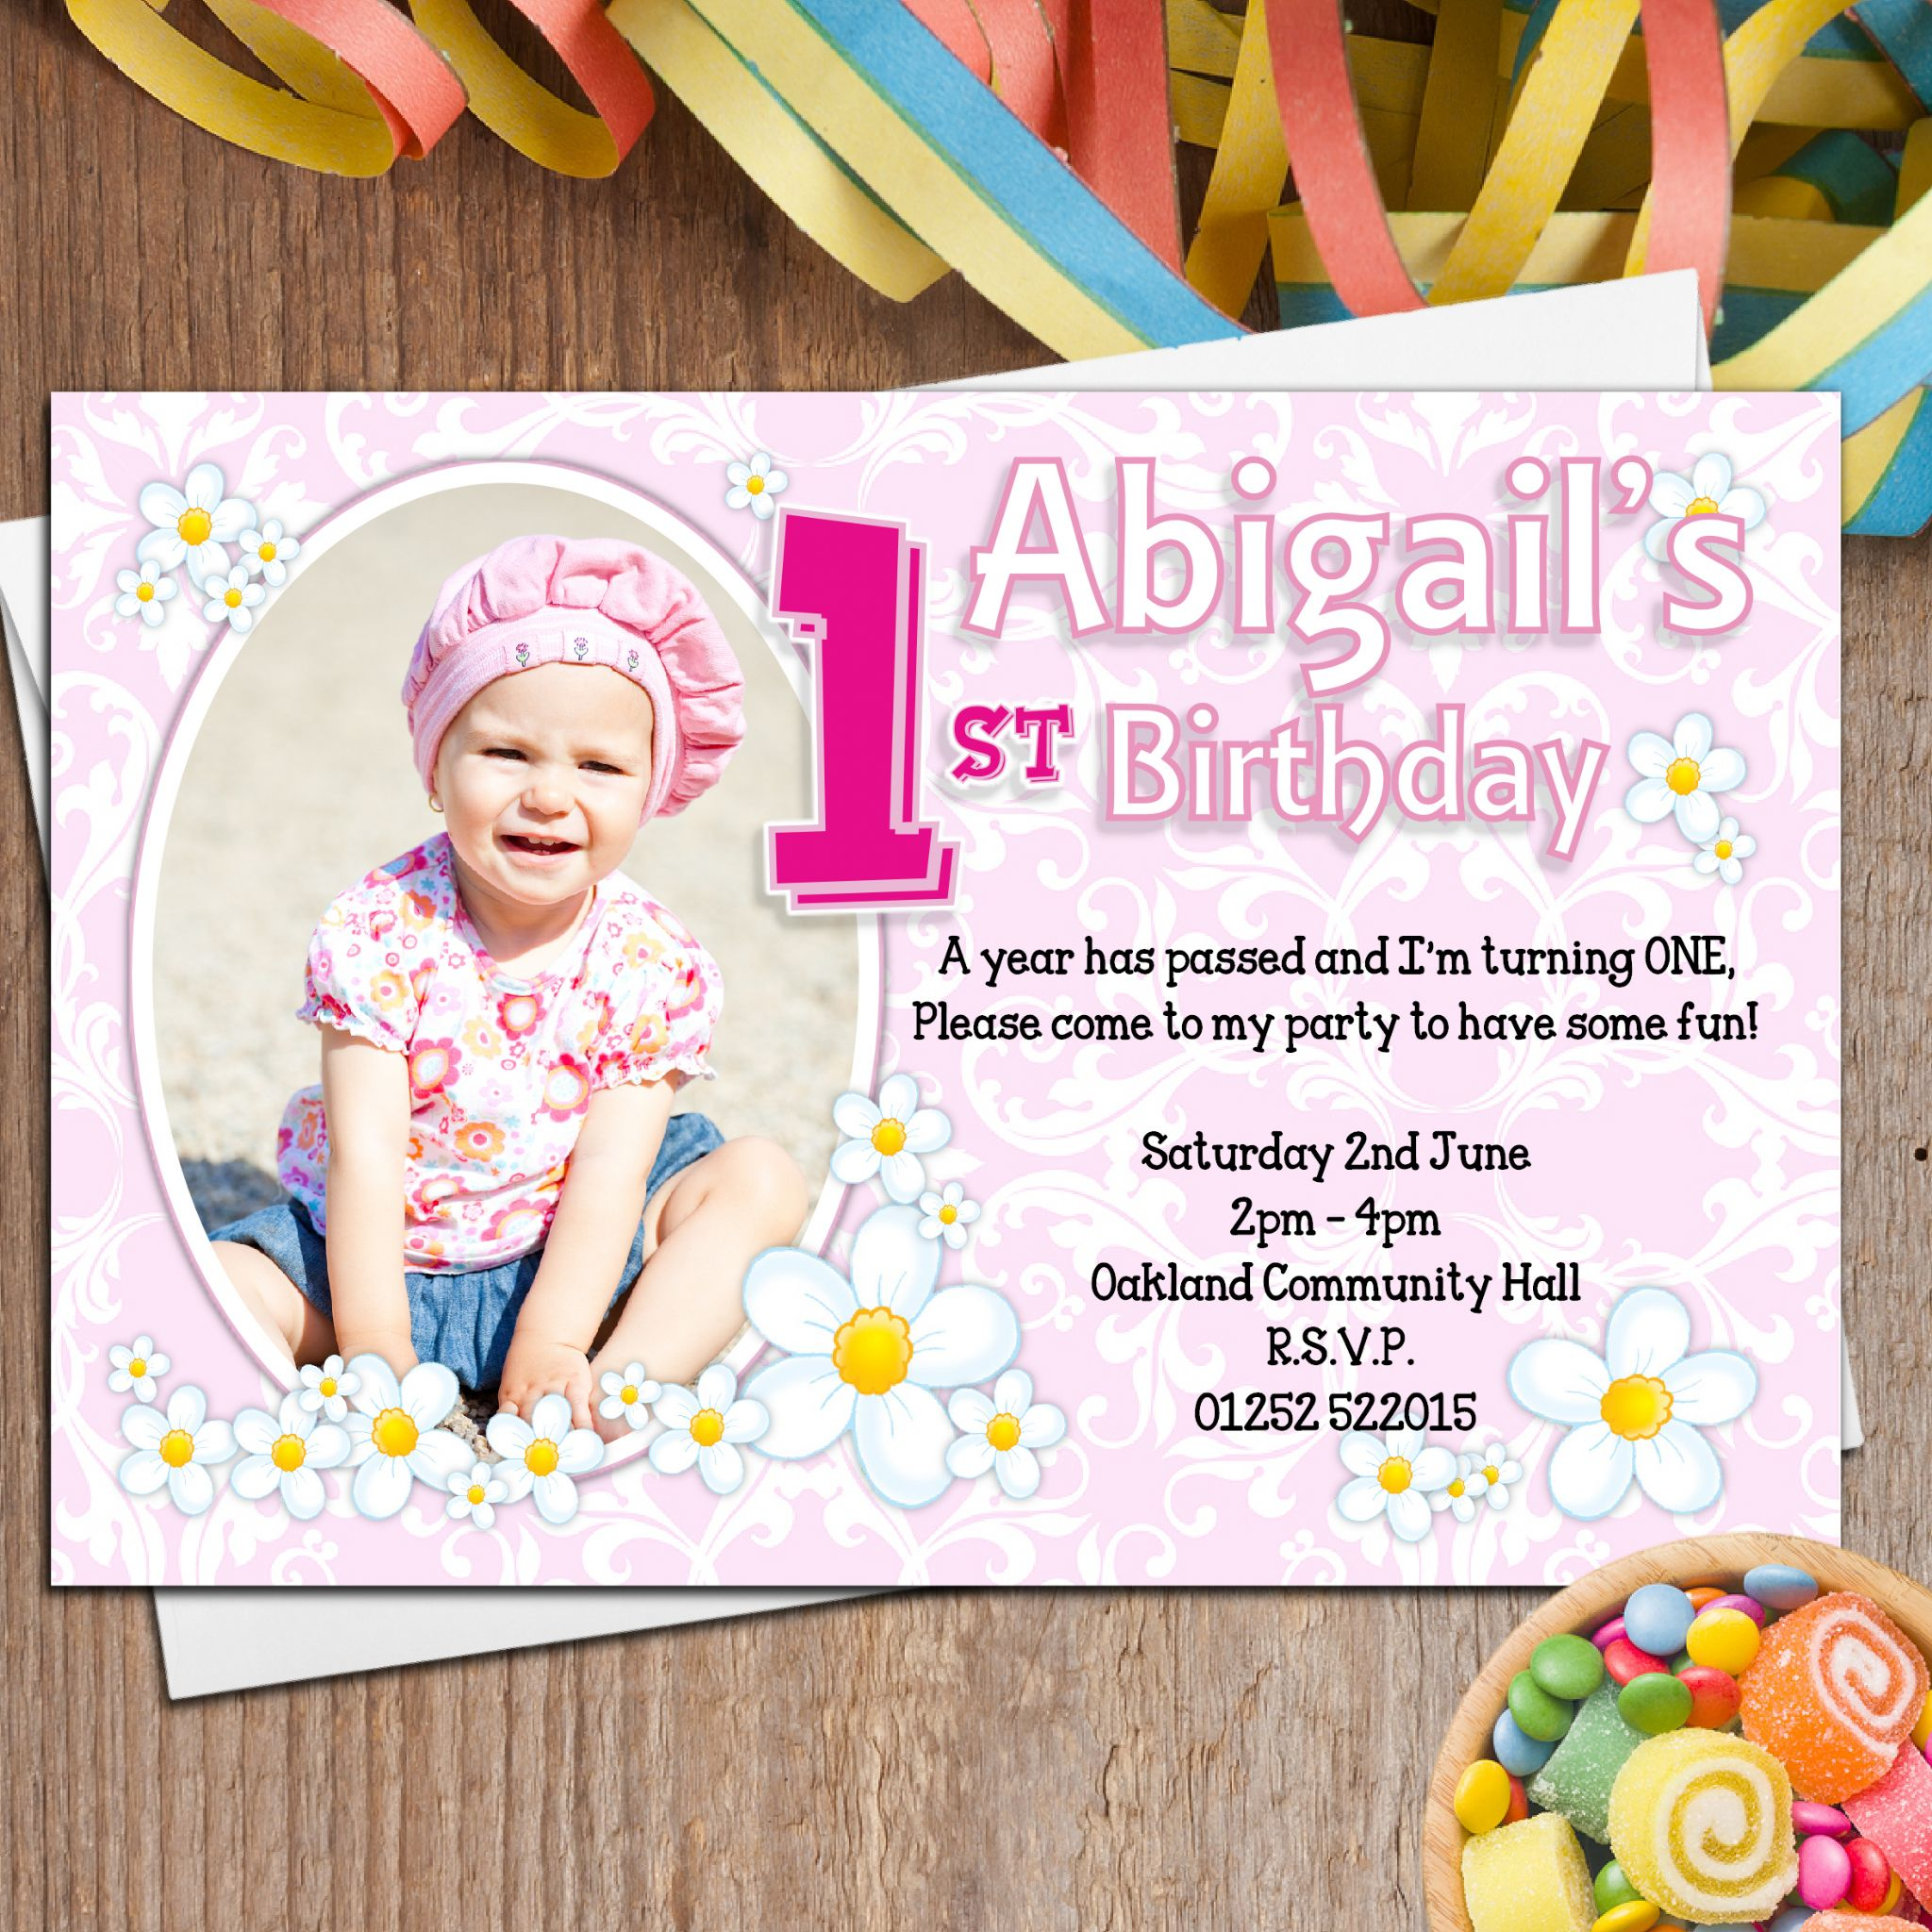 Organization birthday invitation shefftunes organization birthday invitation stopboris Choice Image